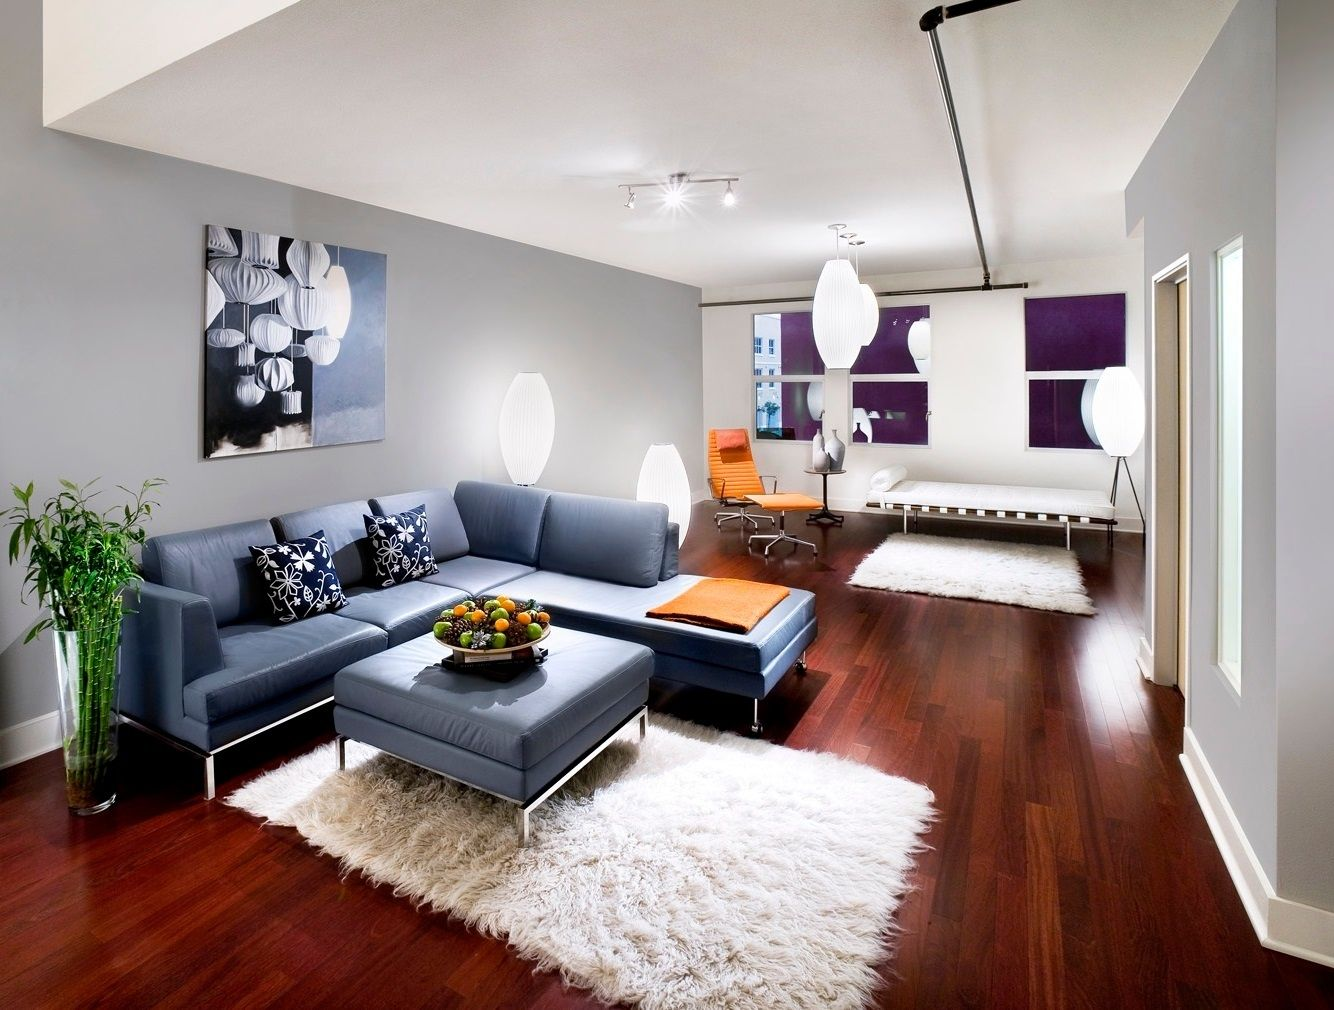 Apartment Living Room Design Ideas On A Budget Adorable Dont Overlook The Importance Of Home Staging  Homeowner Tips Inspiration Design